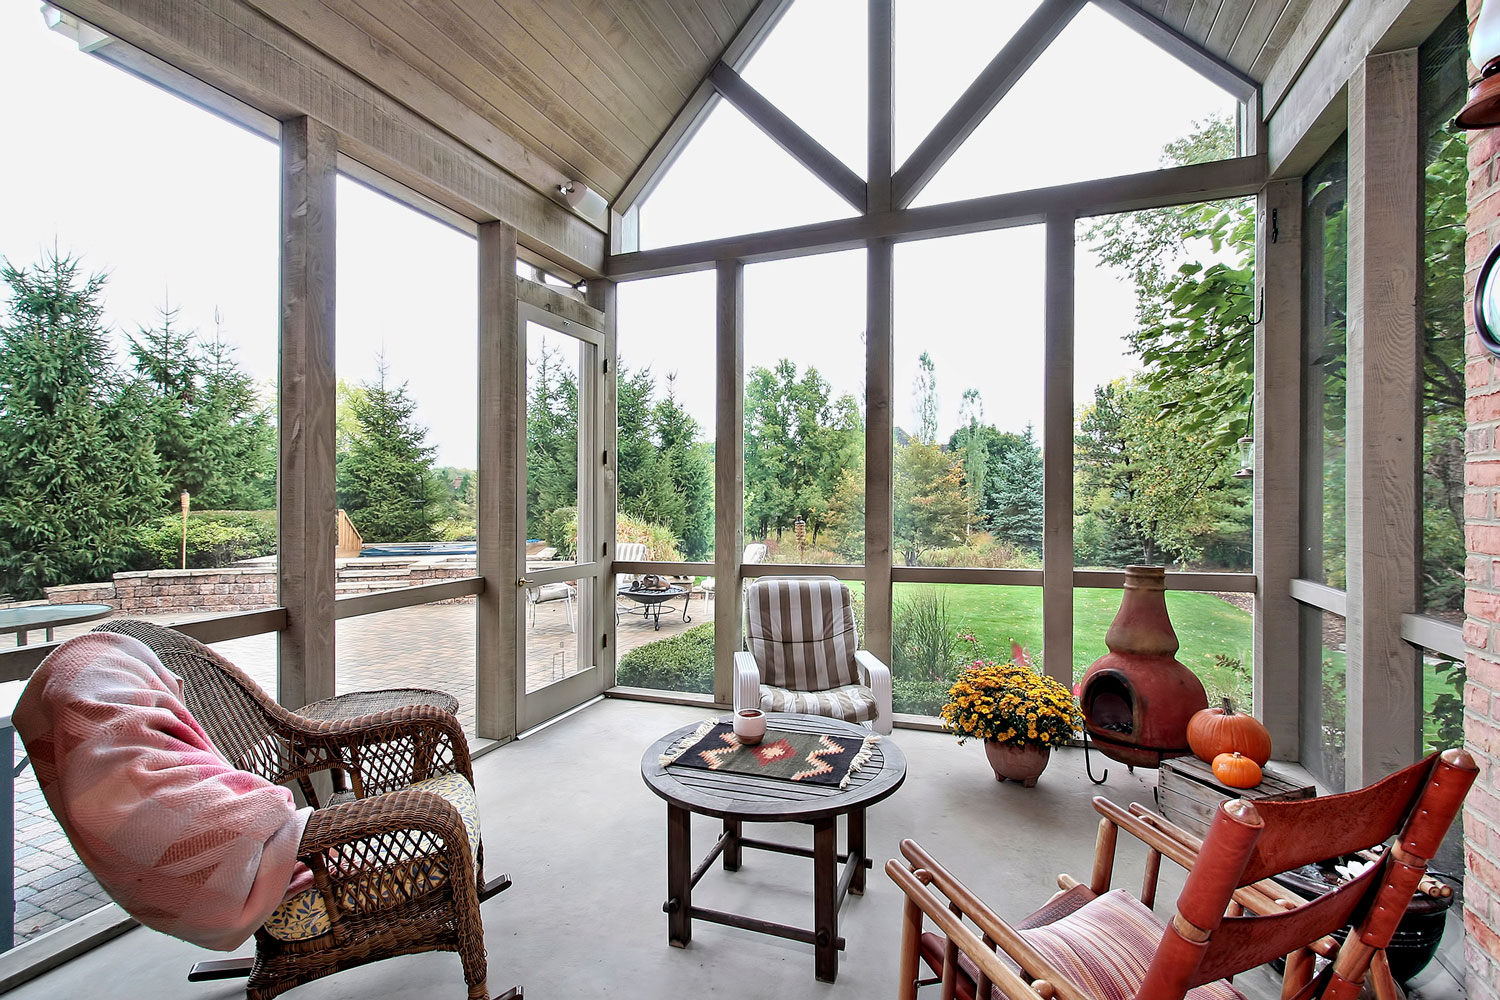 A screen porch design with wooden and rattan chairs